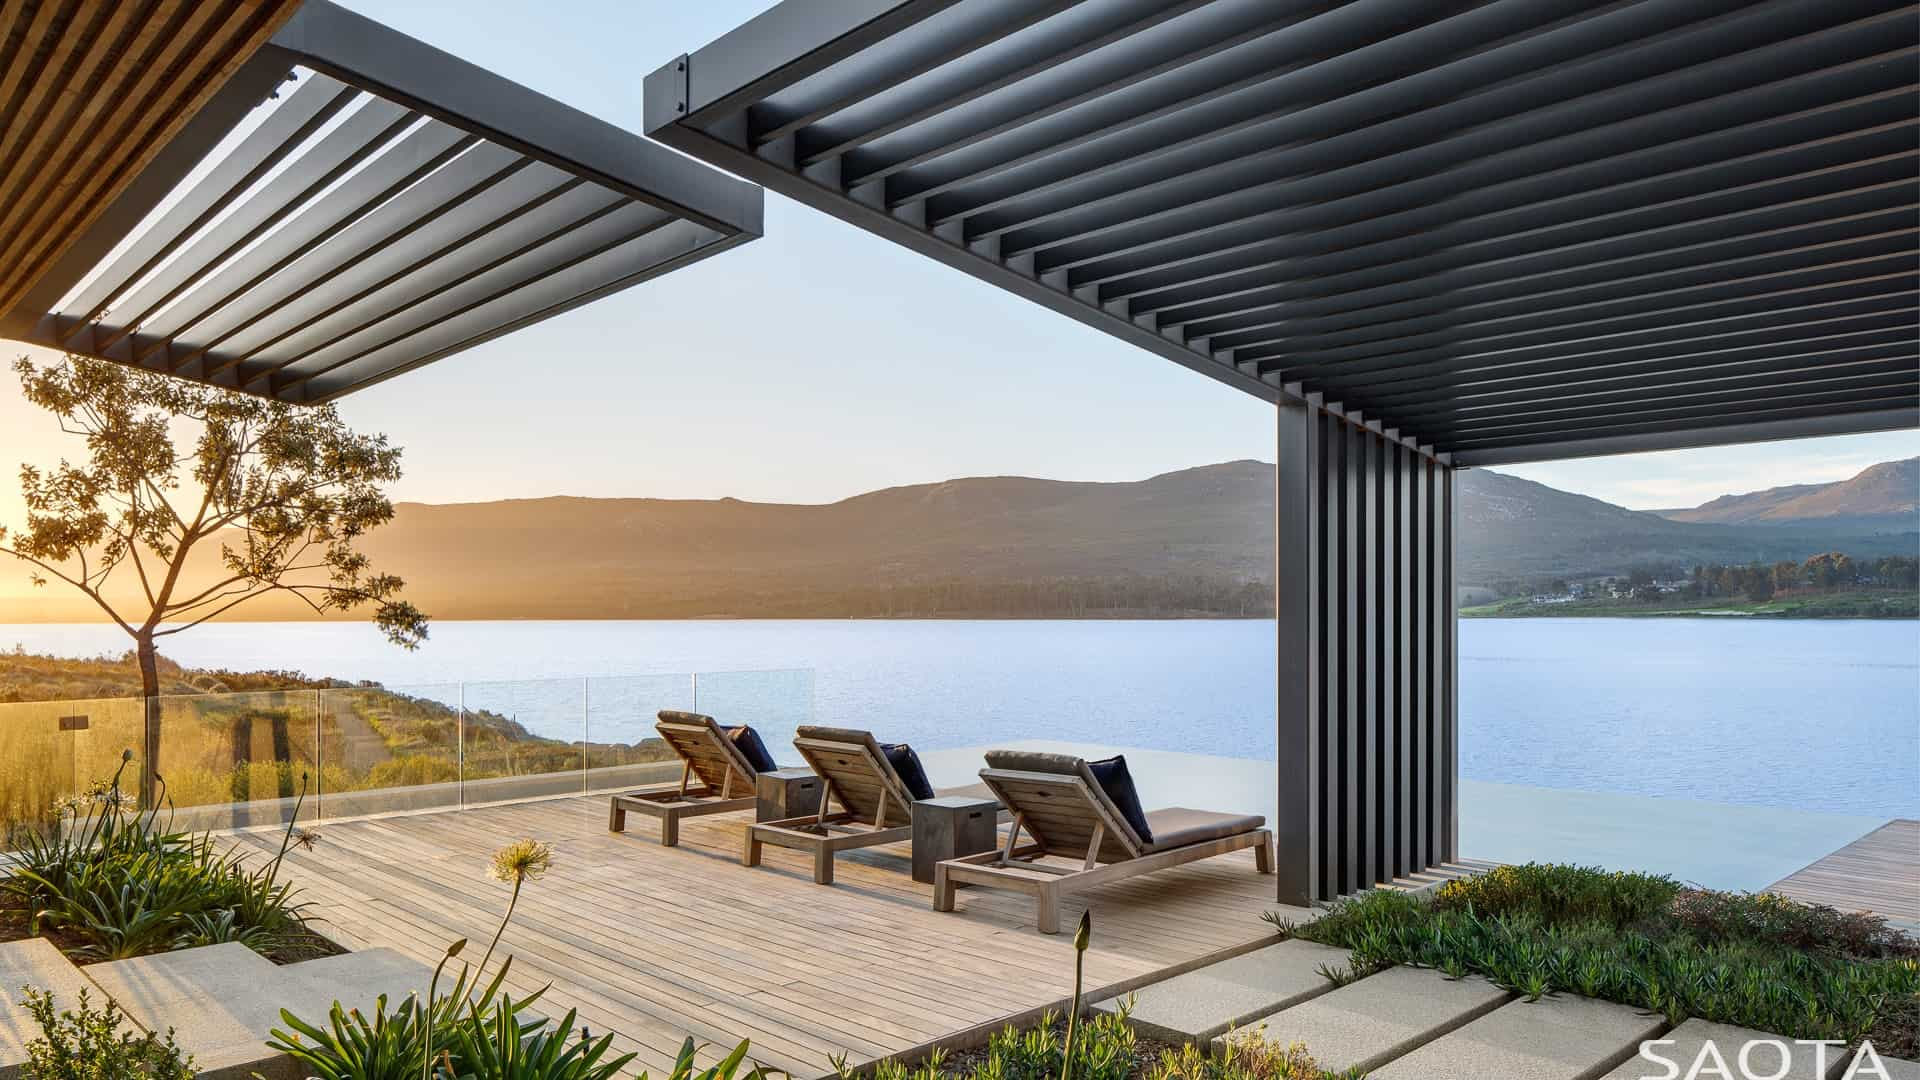 This deck offers a comfortable lounger seats overlooking the hills and river.